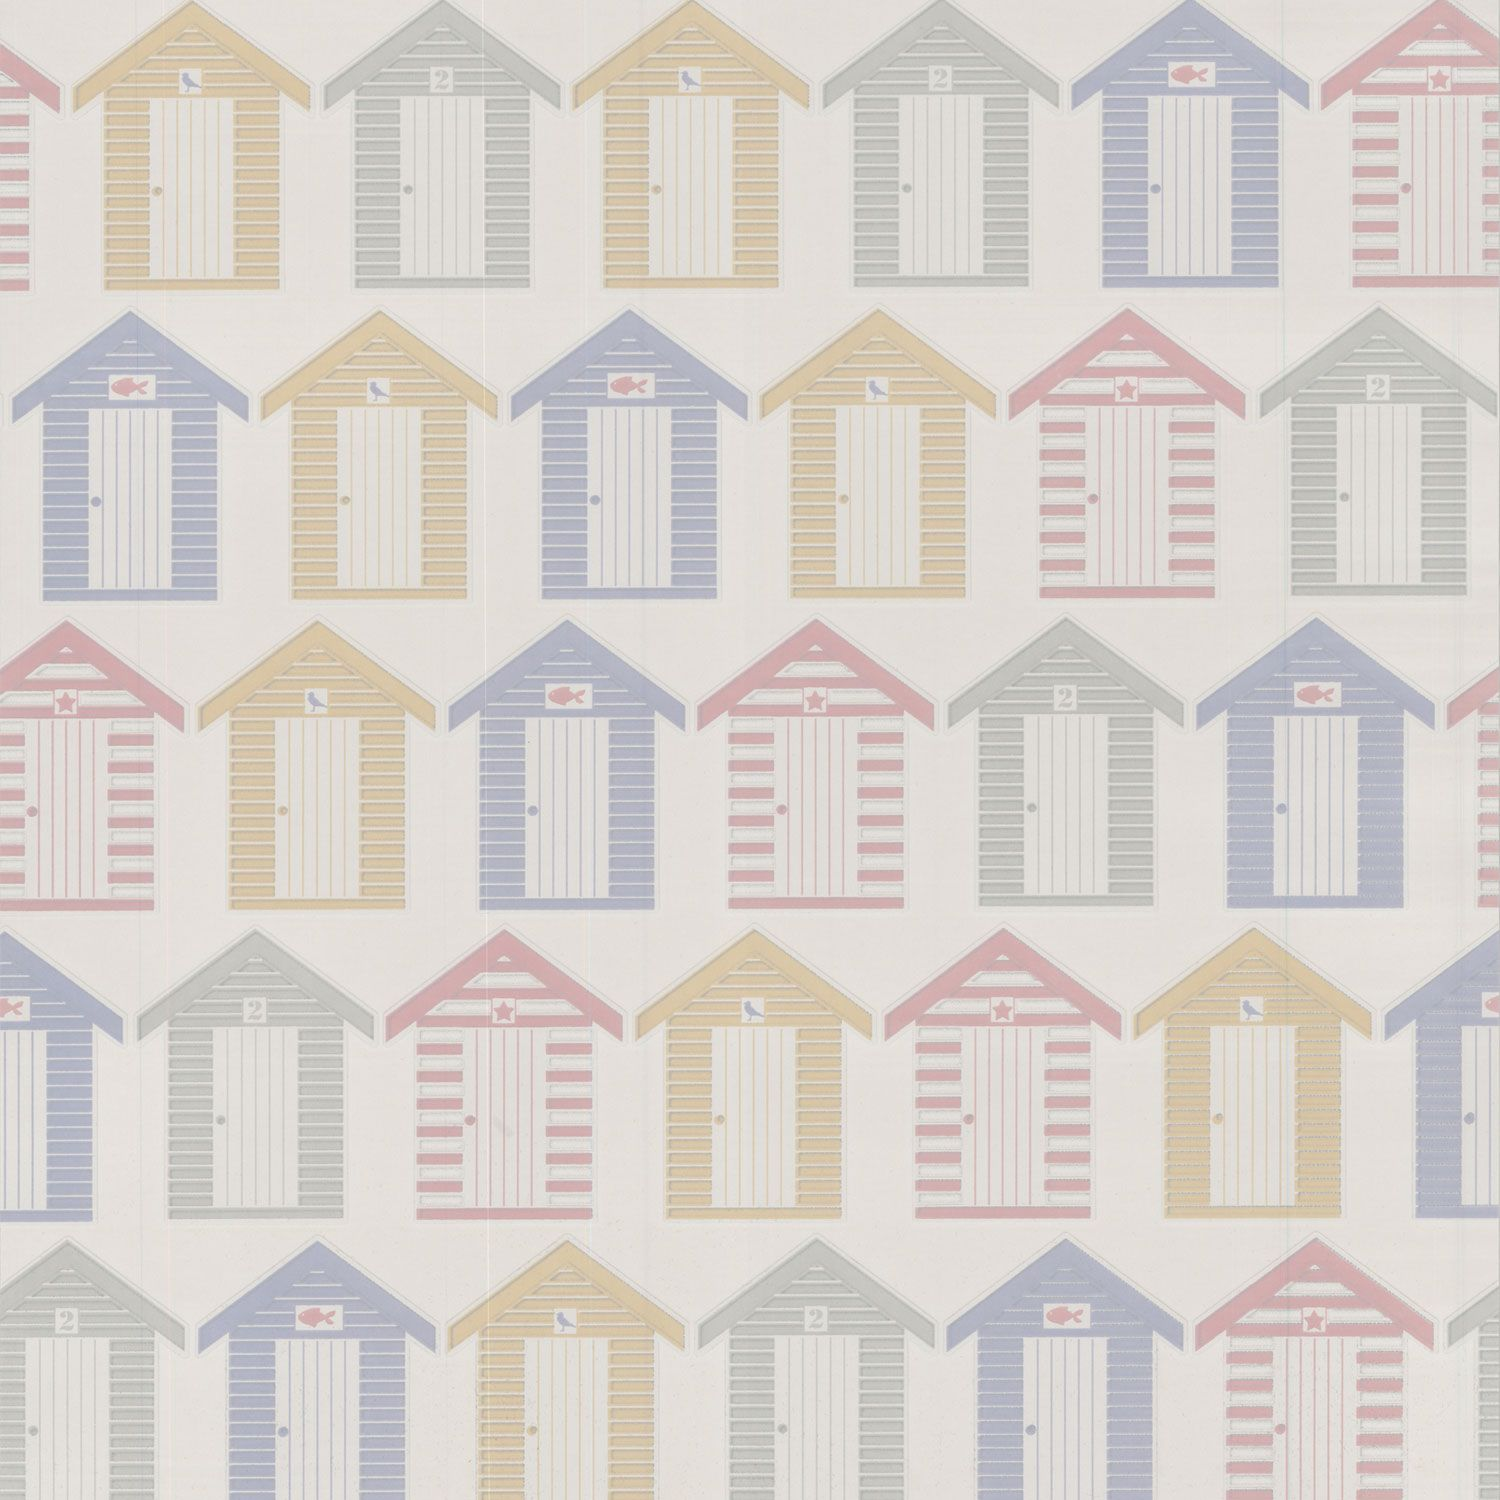 Buy the Contour AB Beside the Seaside Wallpaper at The Range